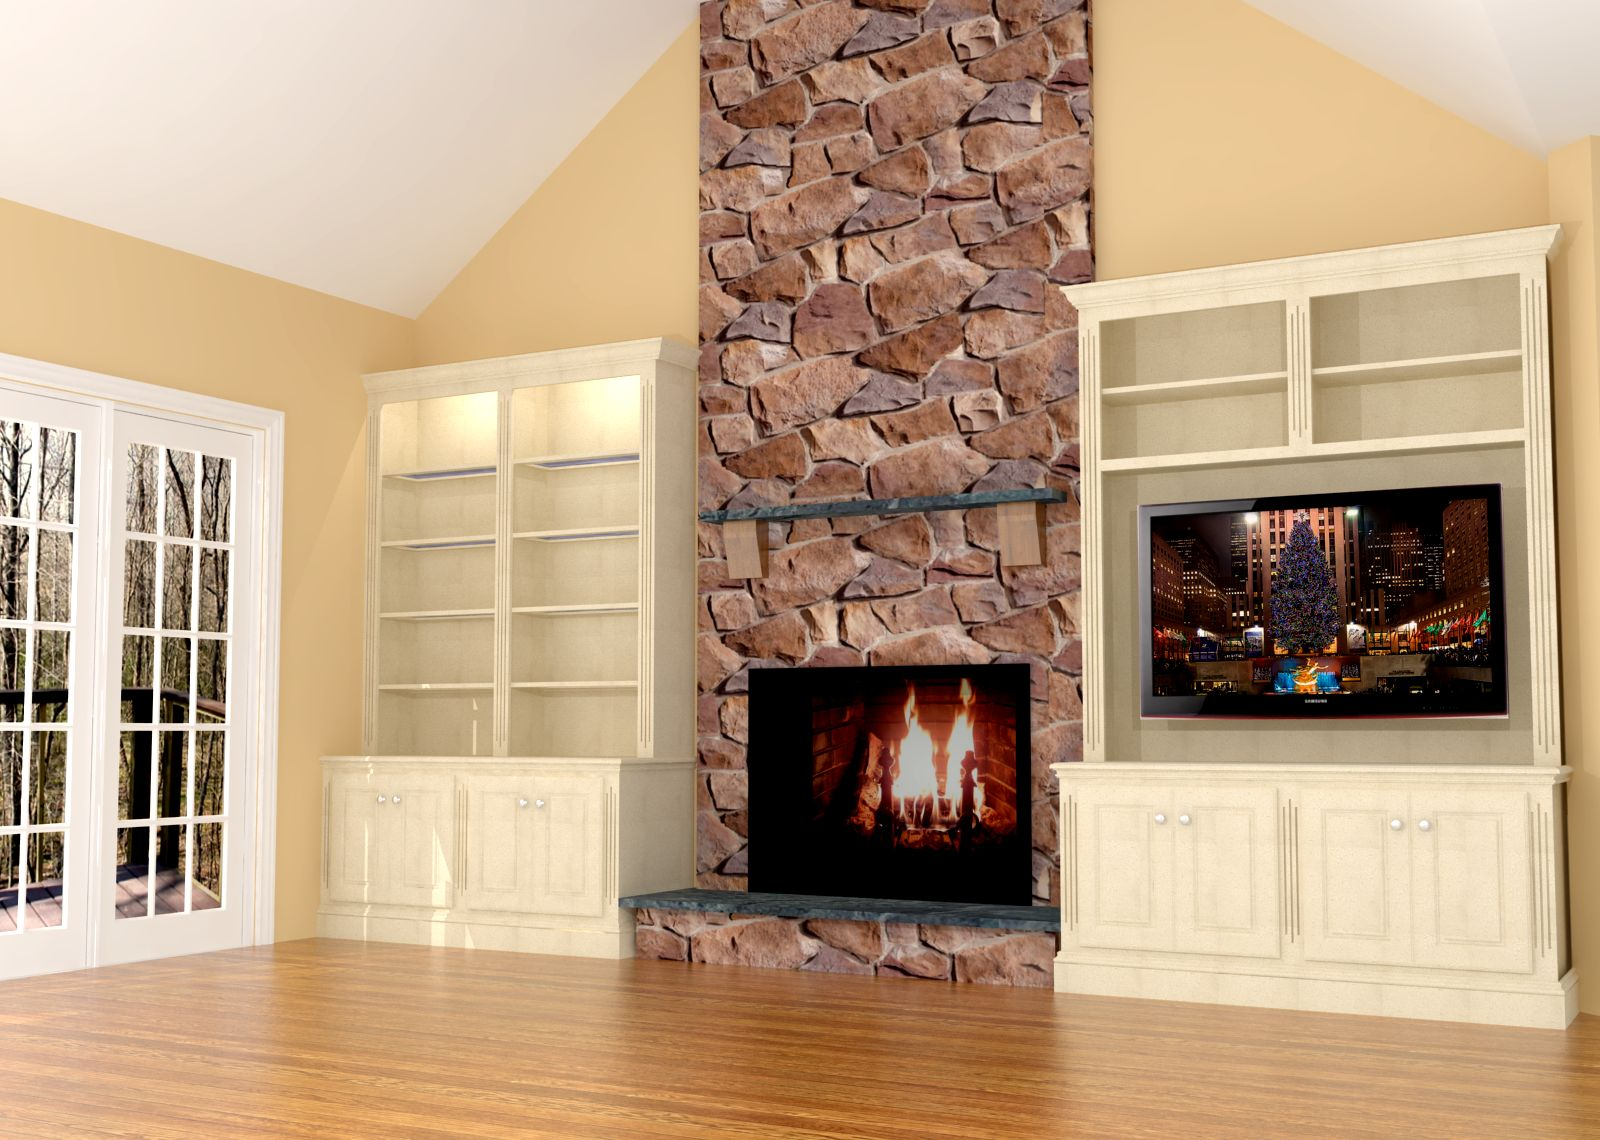 Fireplace wall built ins w led tv nick miller design - Fire place walls ...